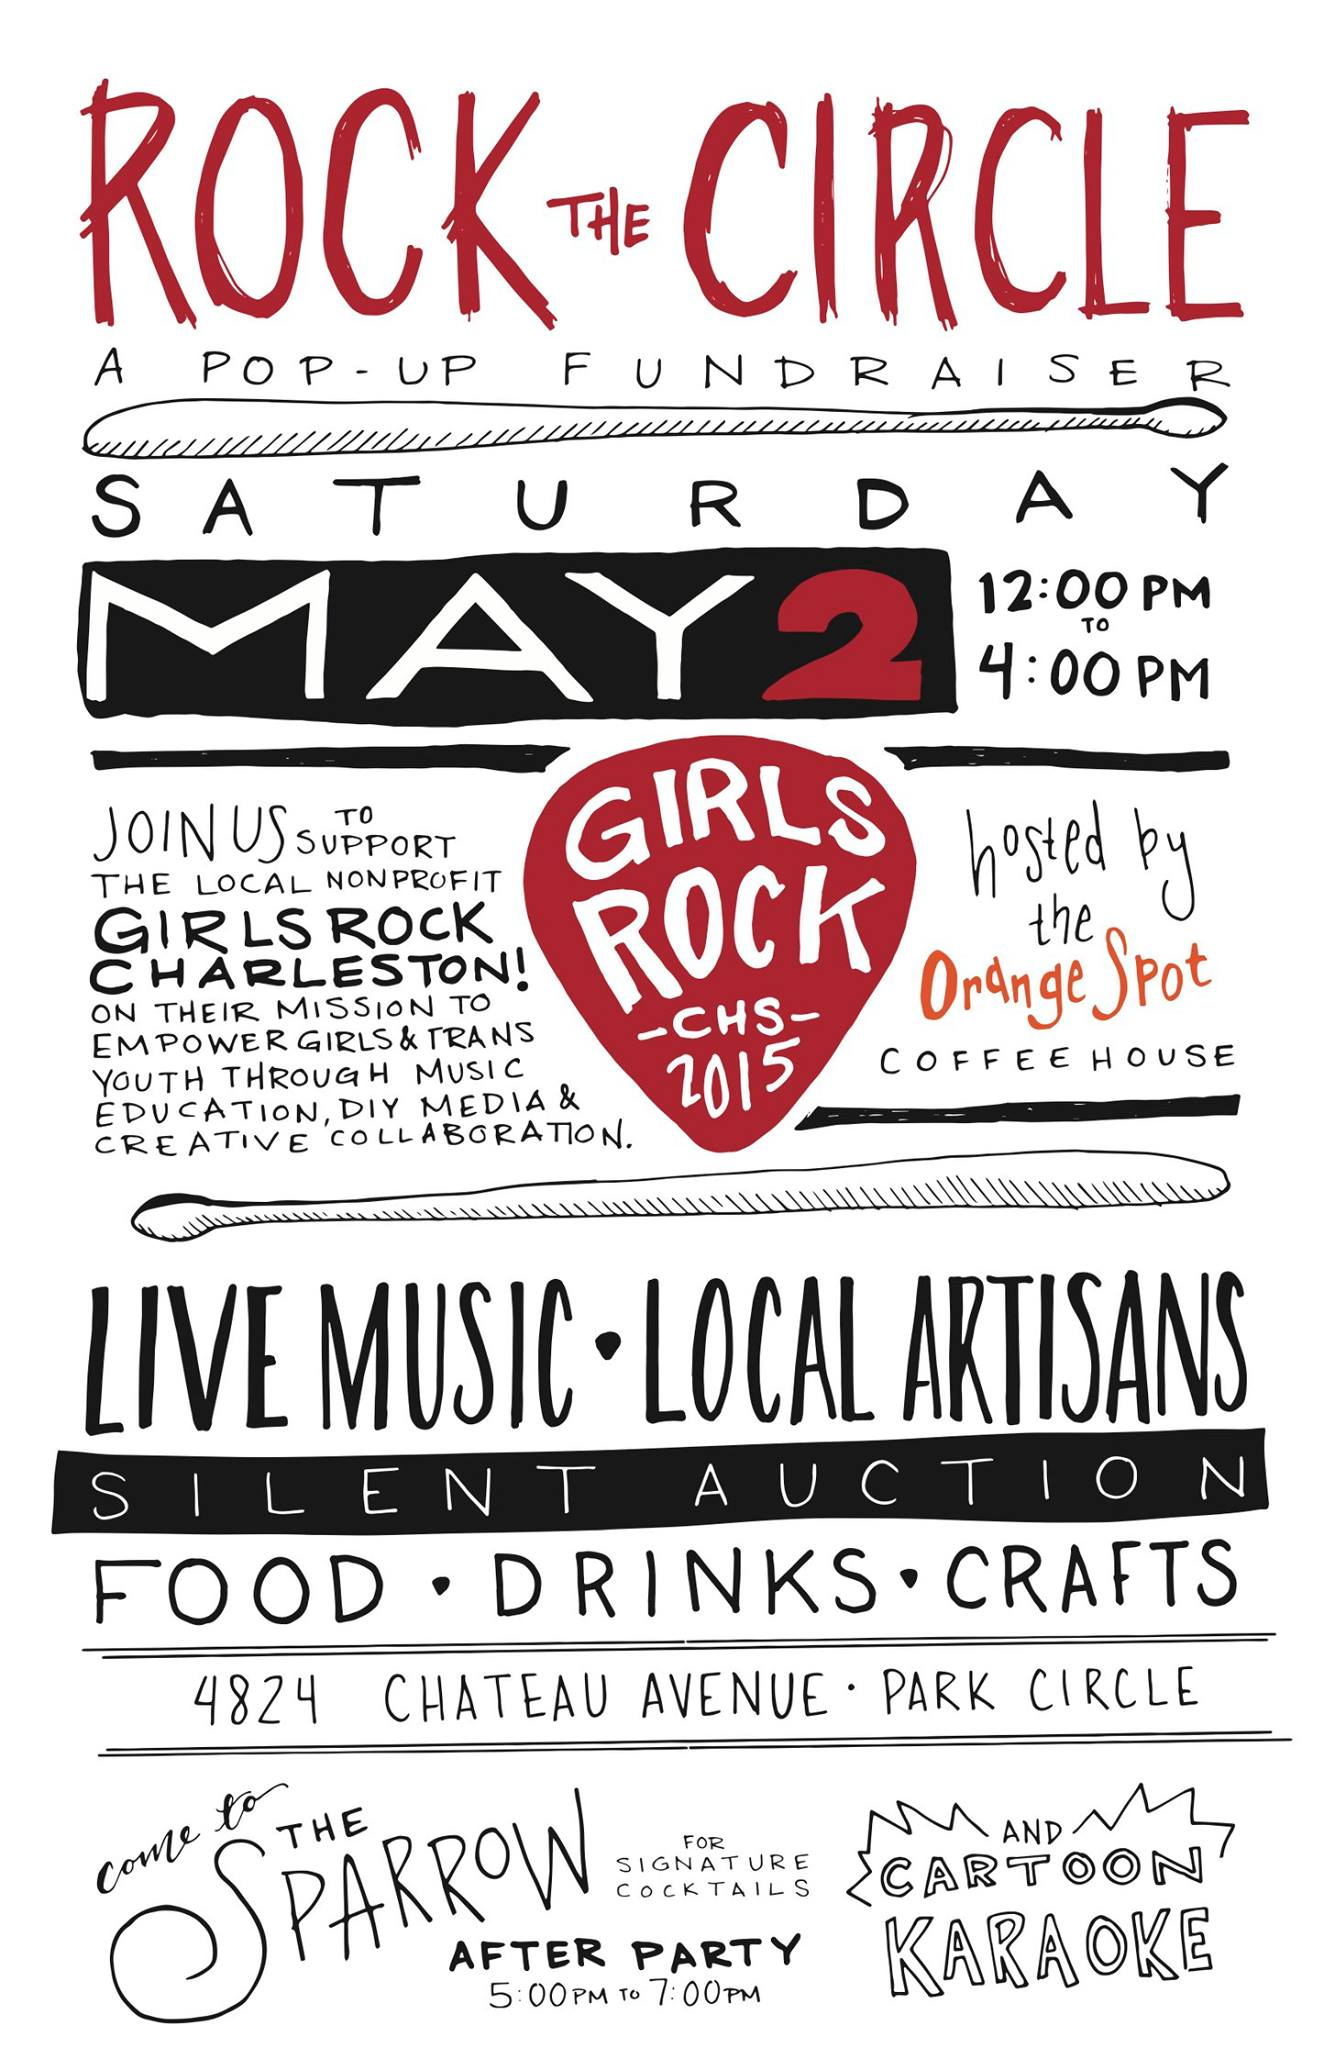 Rock the Circle! A Pop-Up Shop Fundraiser for Girls Rock Charleston